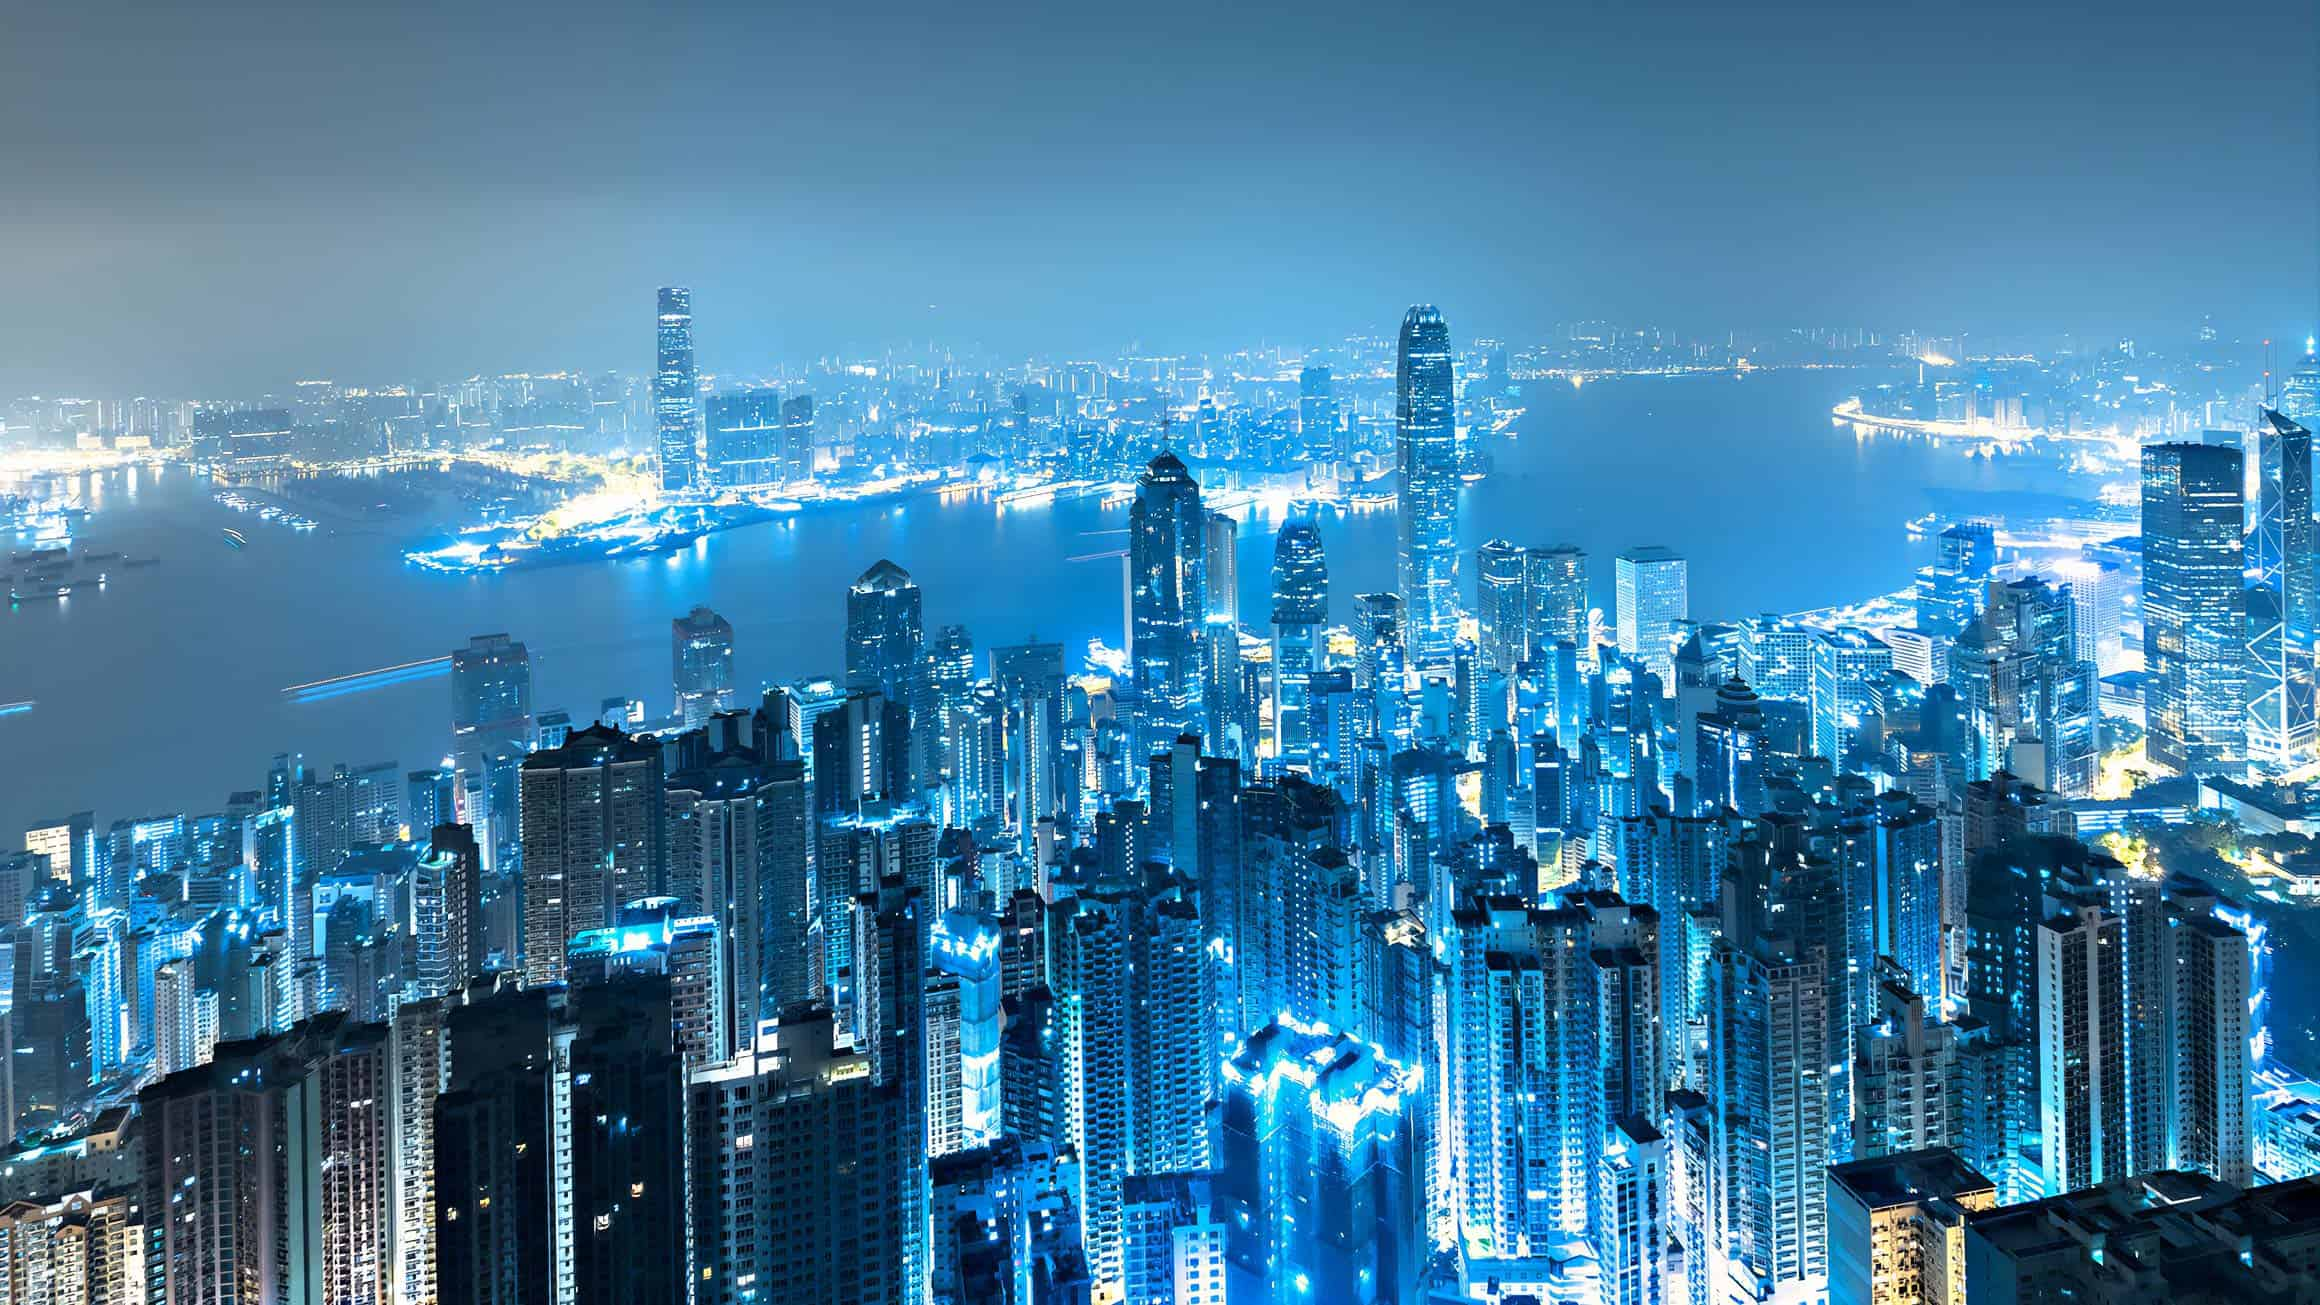 view of Hong Kong skyline by night